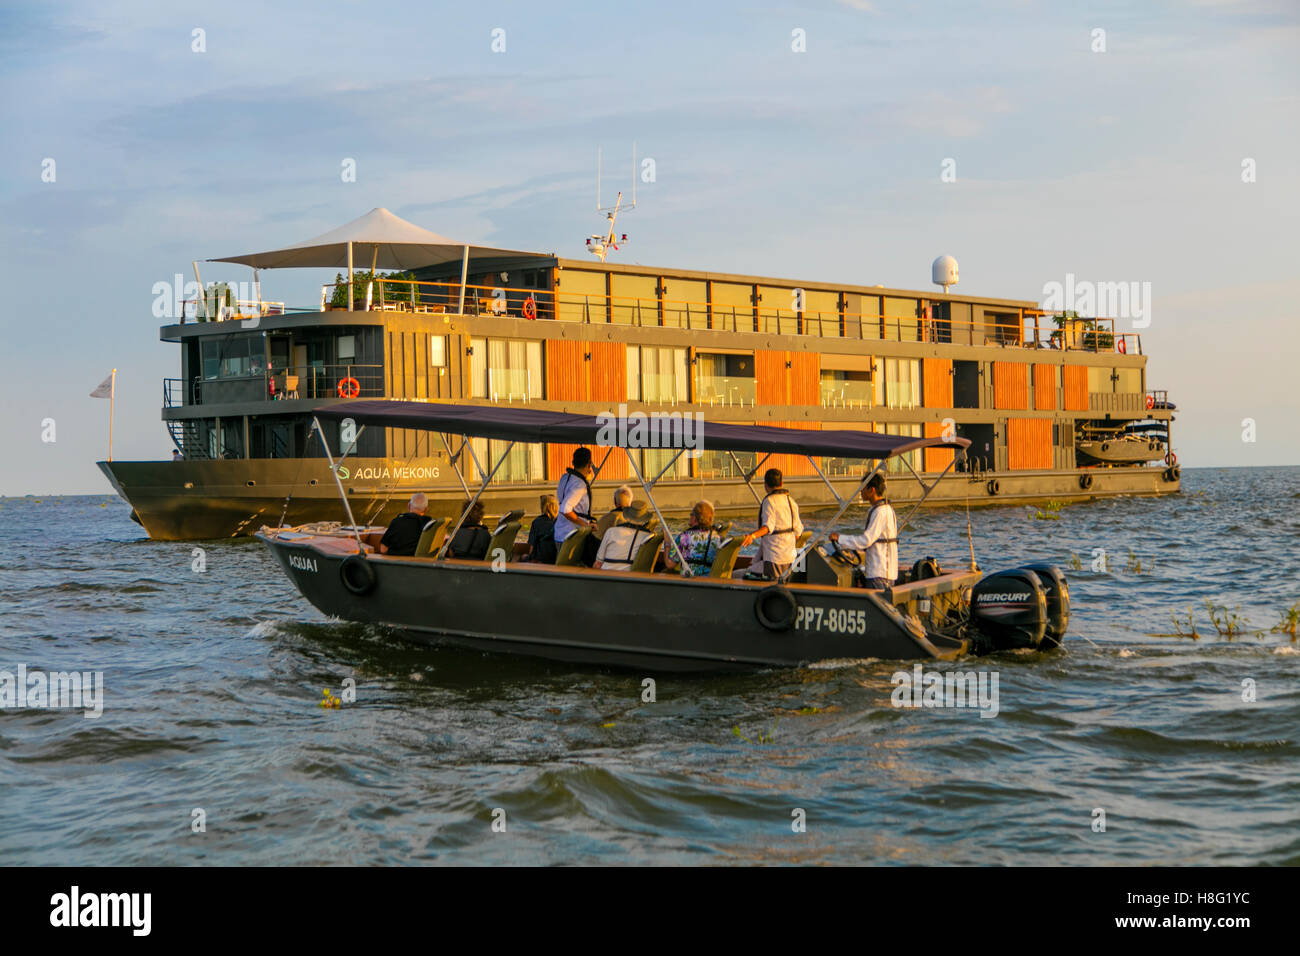 Aqua Expeditions, Tonle Sap and Mekong River Cruise, Cambodia to Vietnam - Stock Image